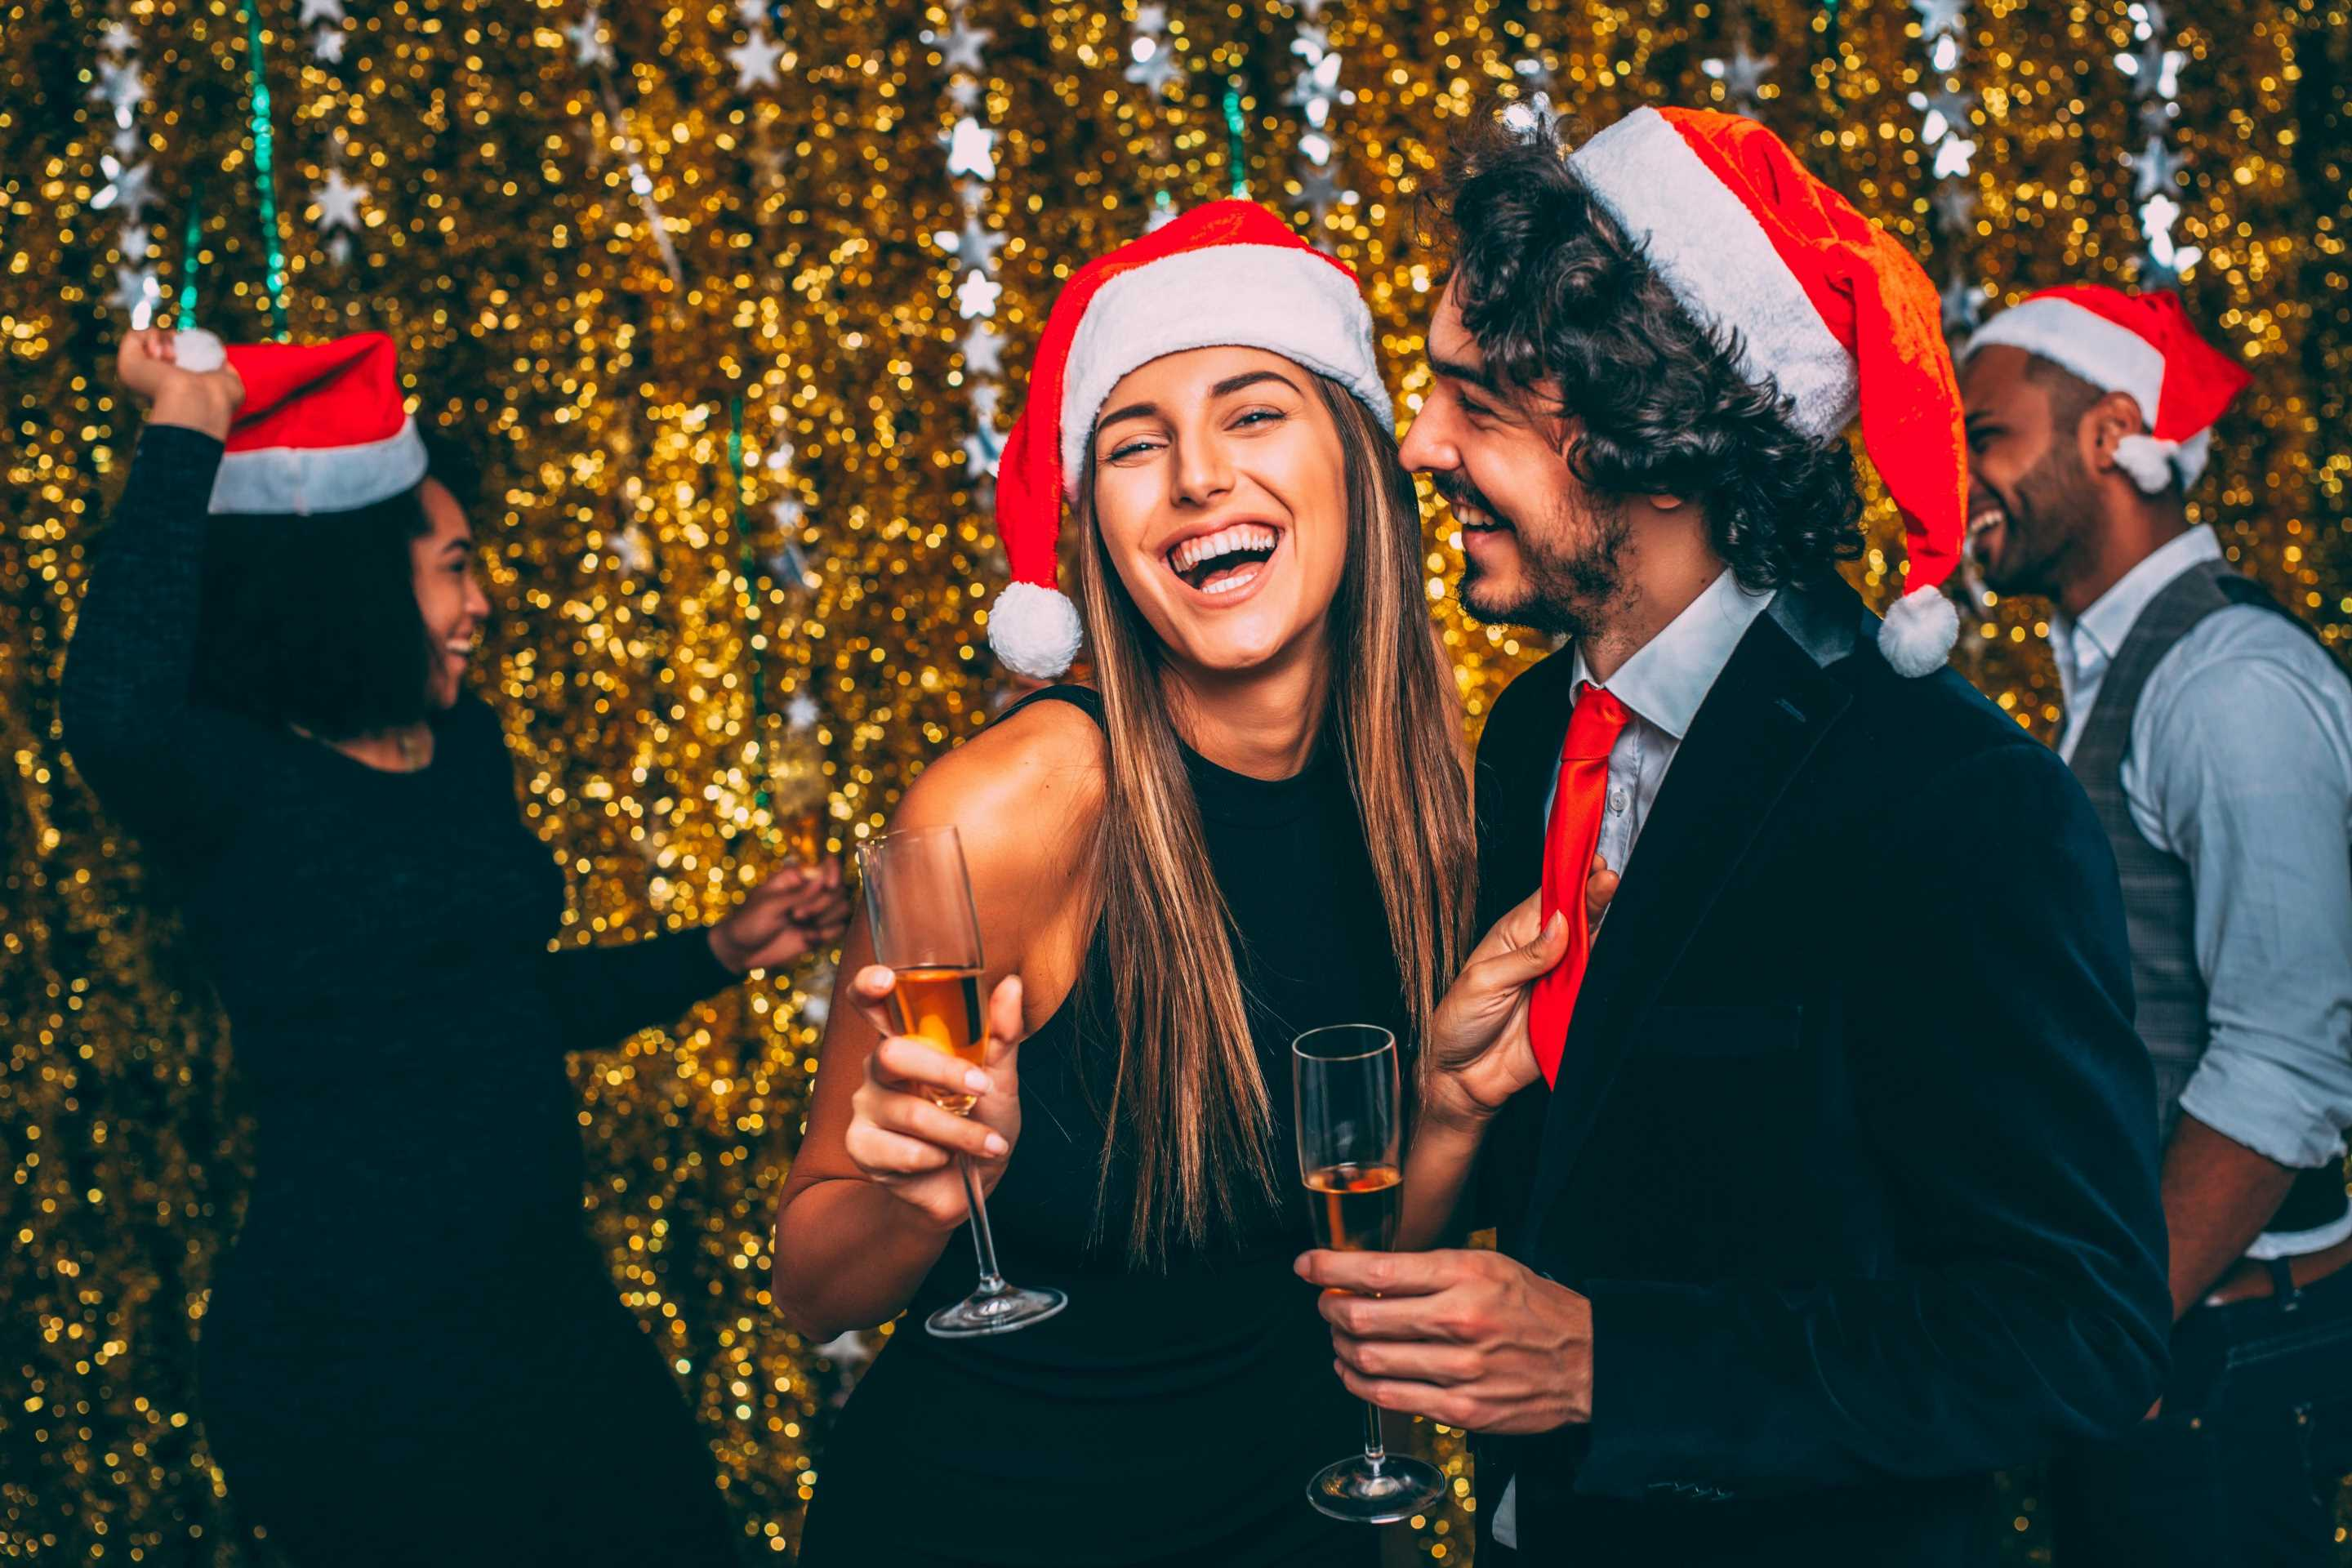 Online pharmacy halves price of morning-after pill for Christmas party season